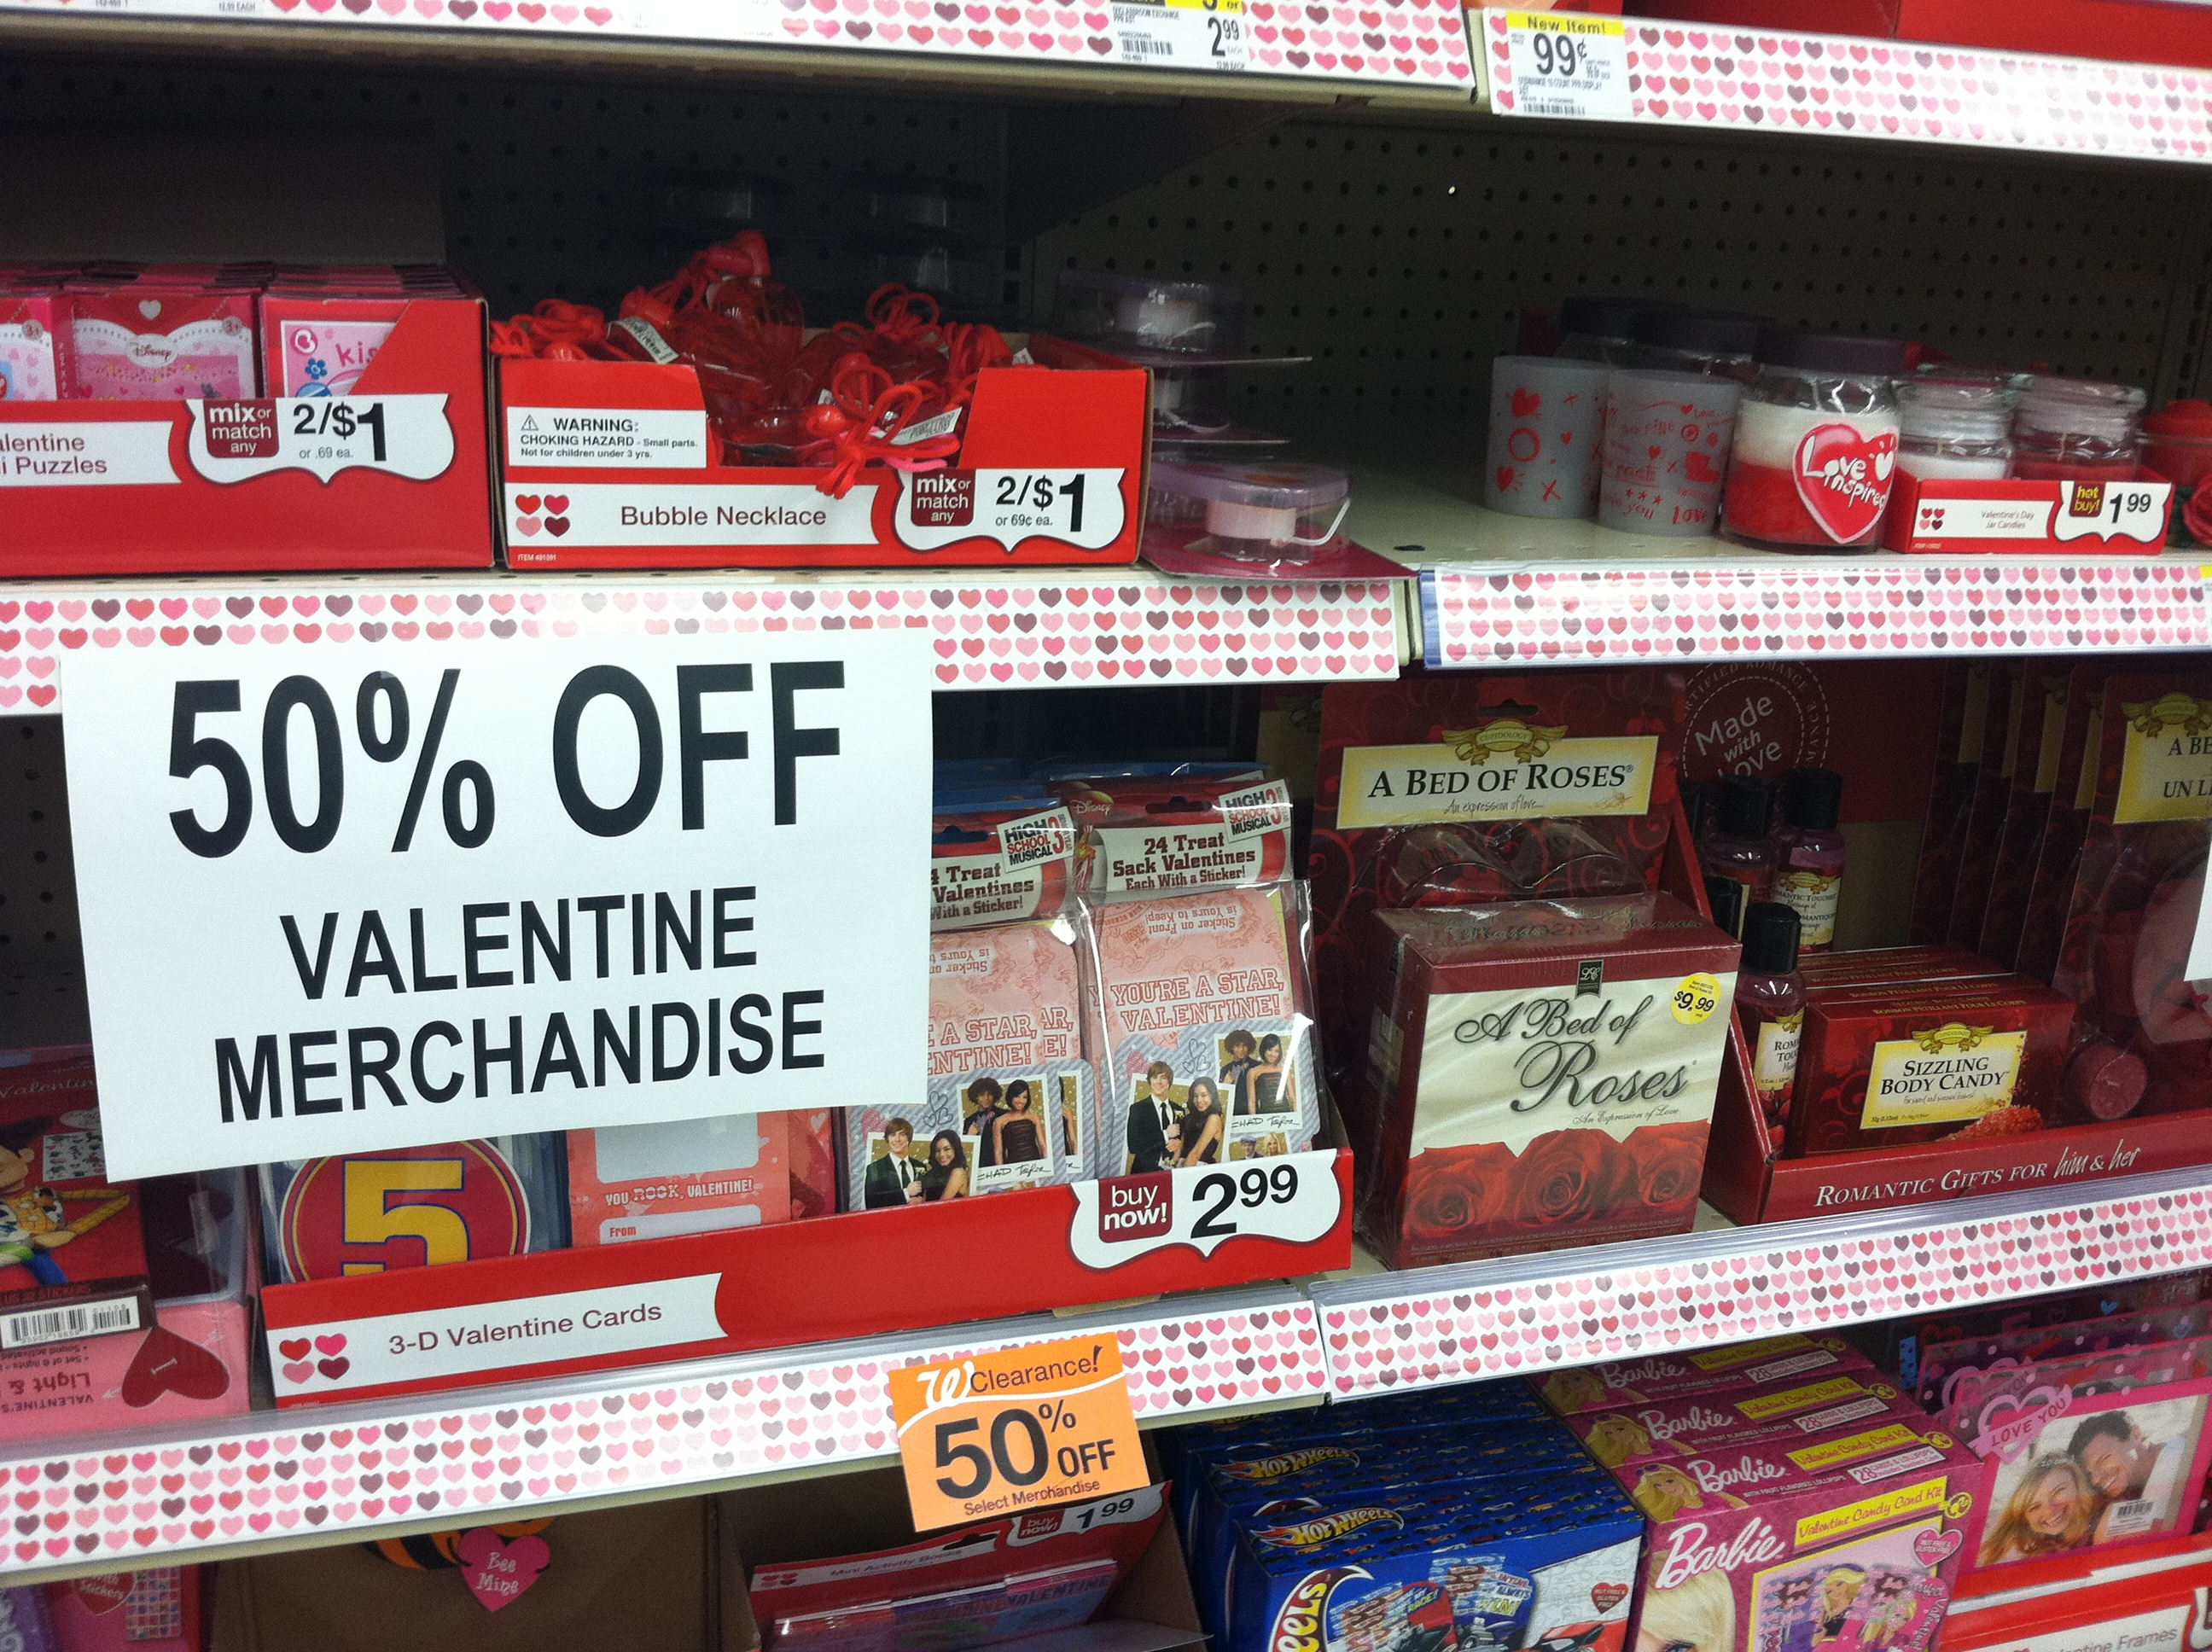 Valentines Clearance 50% off Walgreens and Walmart!